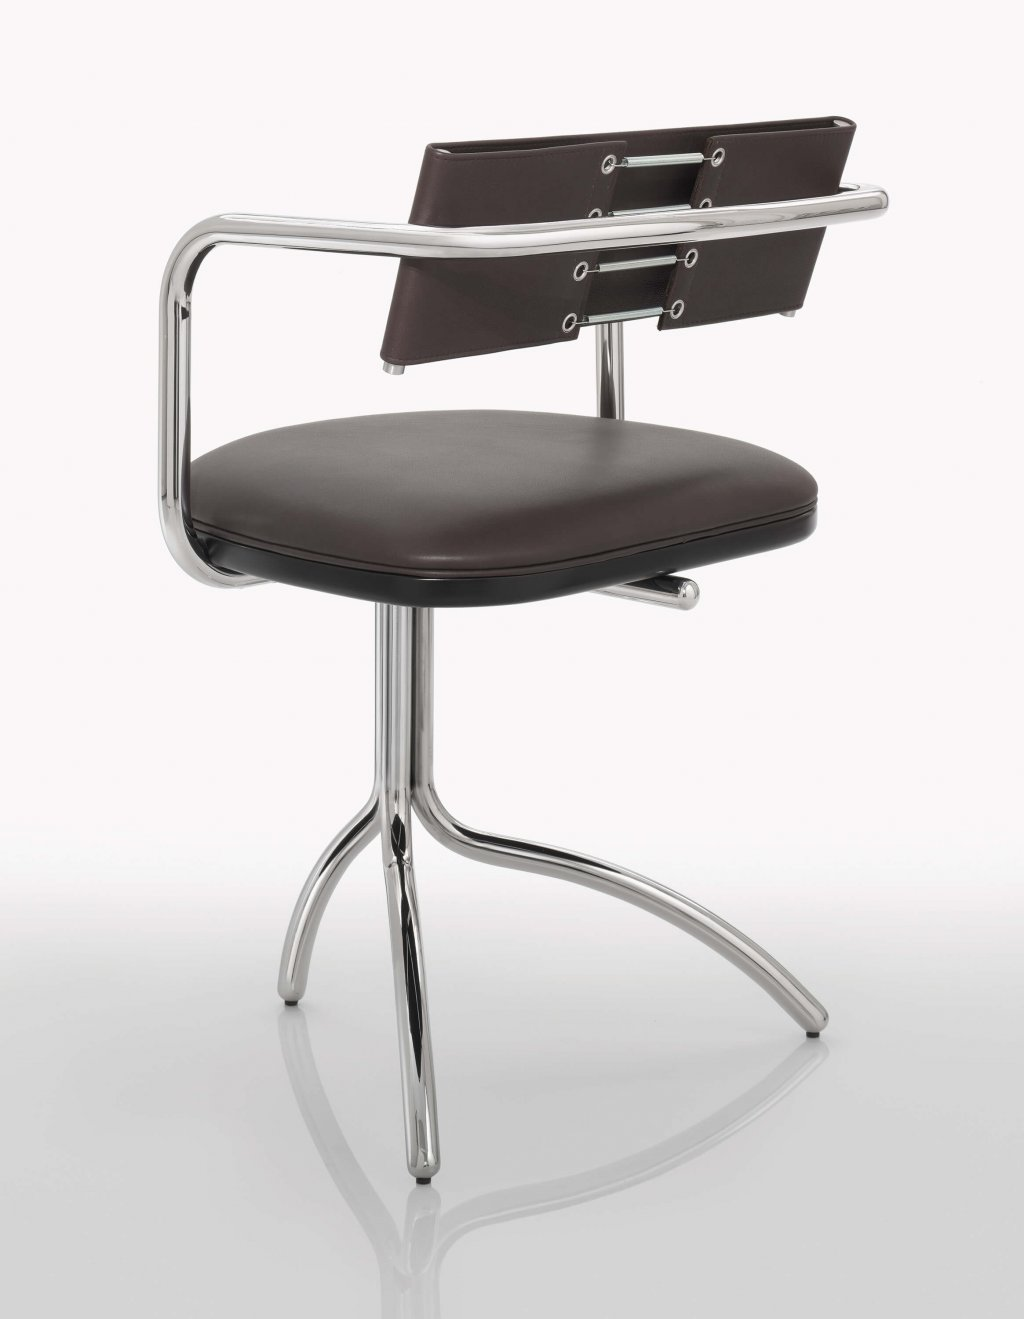 Mergentime Chair, Friedrich Kiesler, 1933